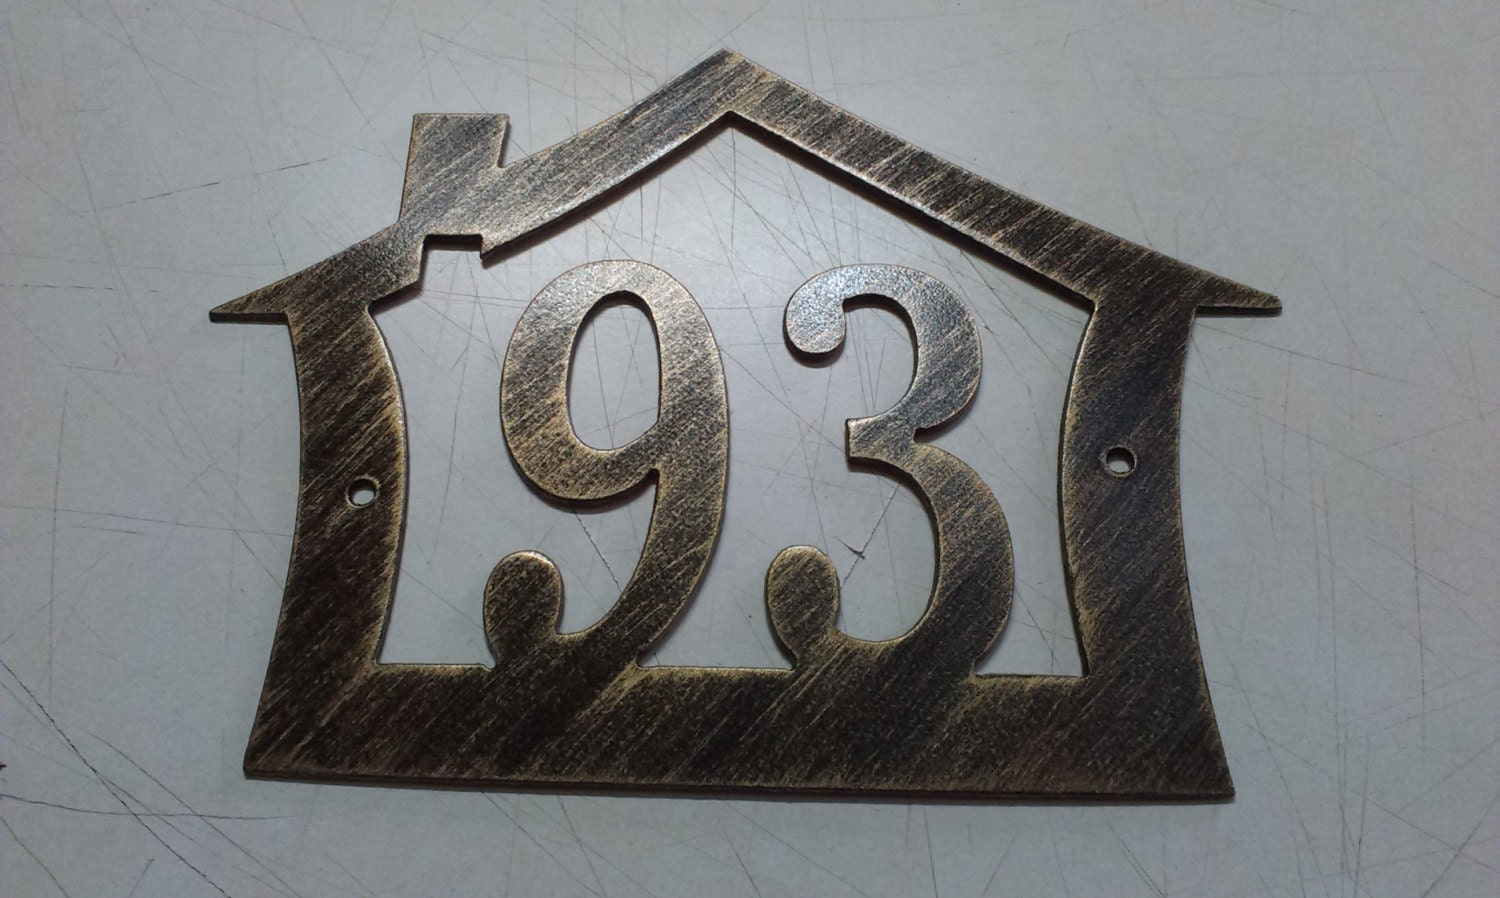 Wall Decor Metal Numbers : House number address sign design wall decor metal art